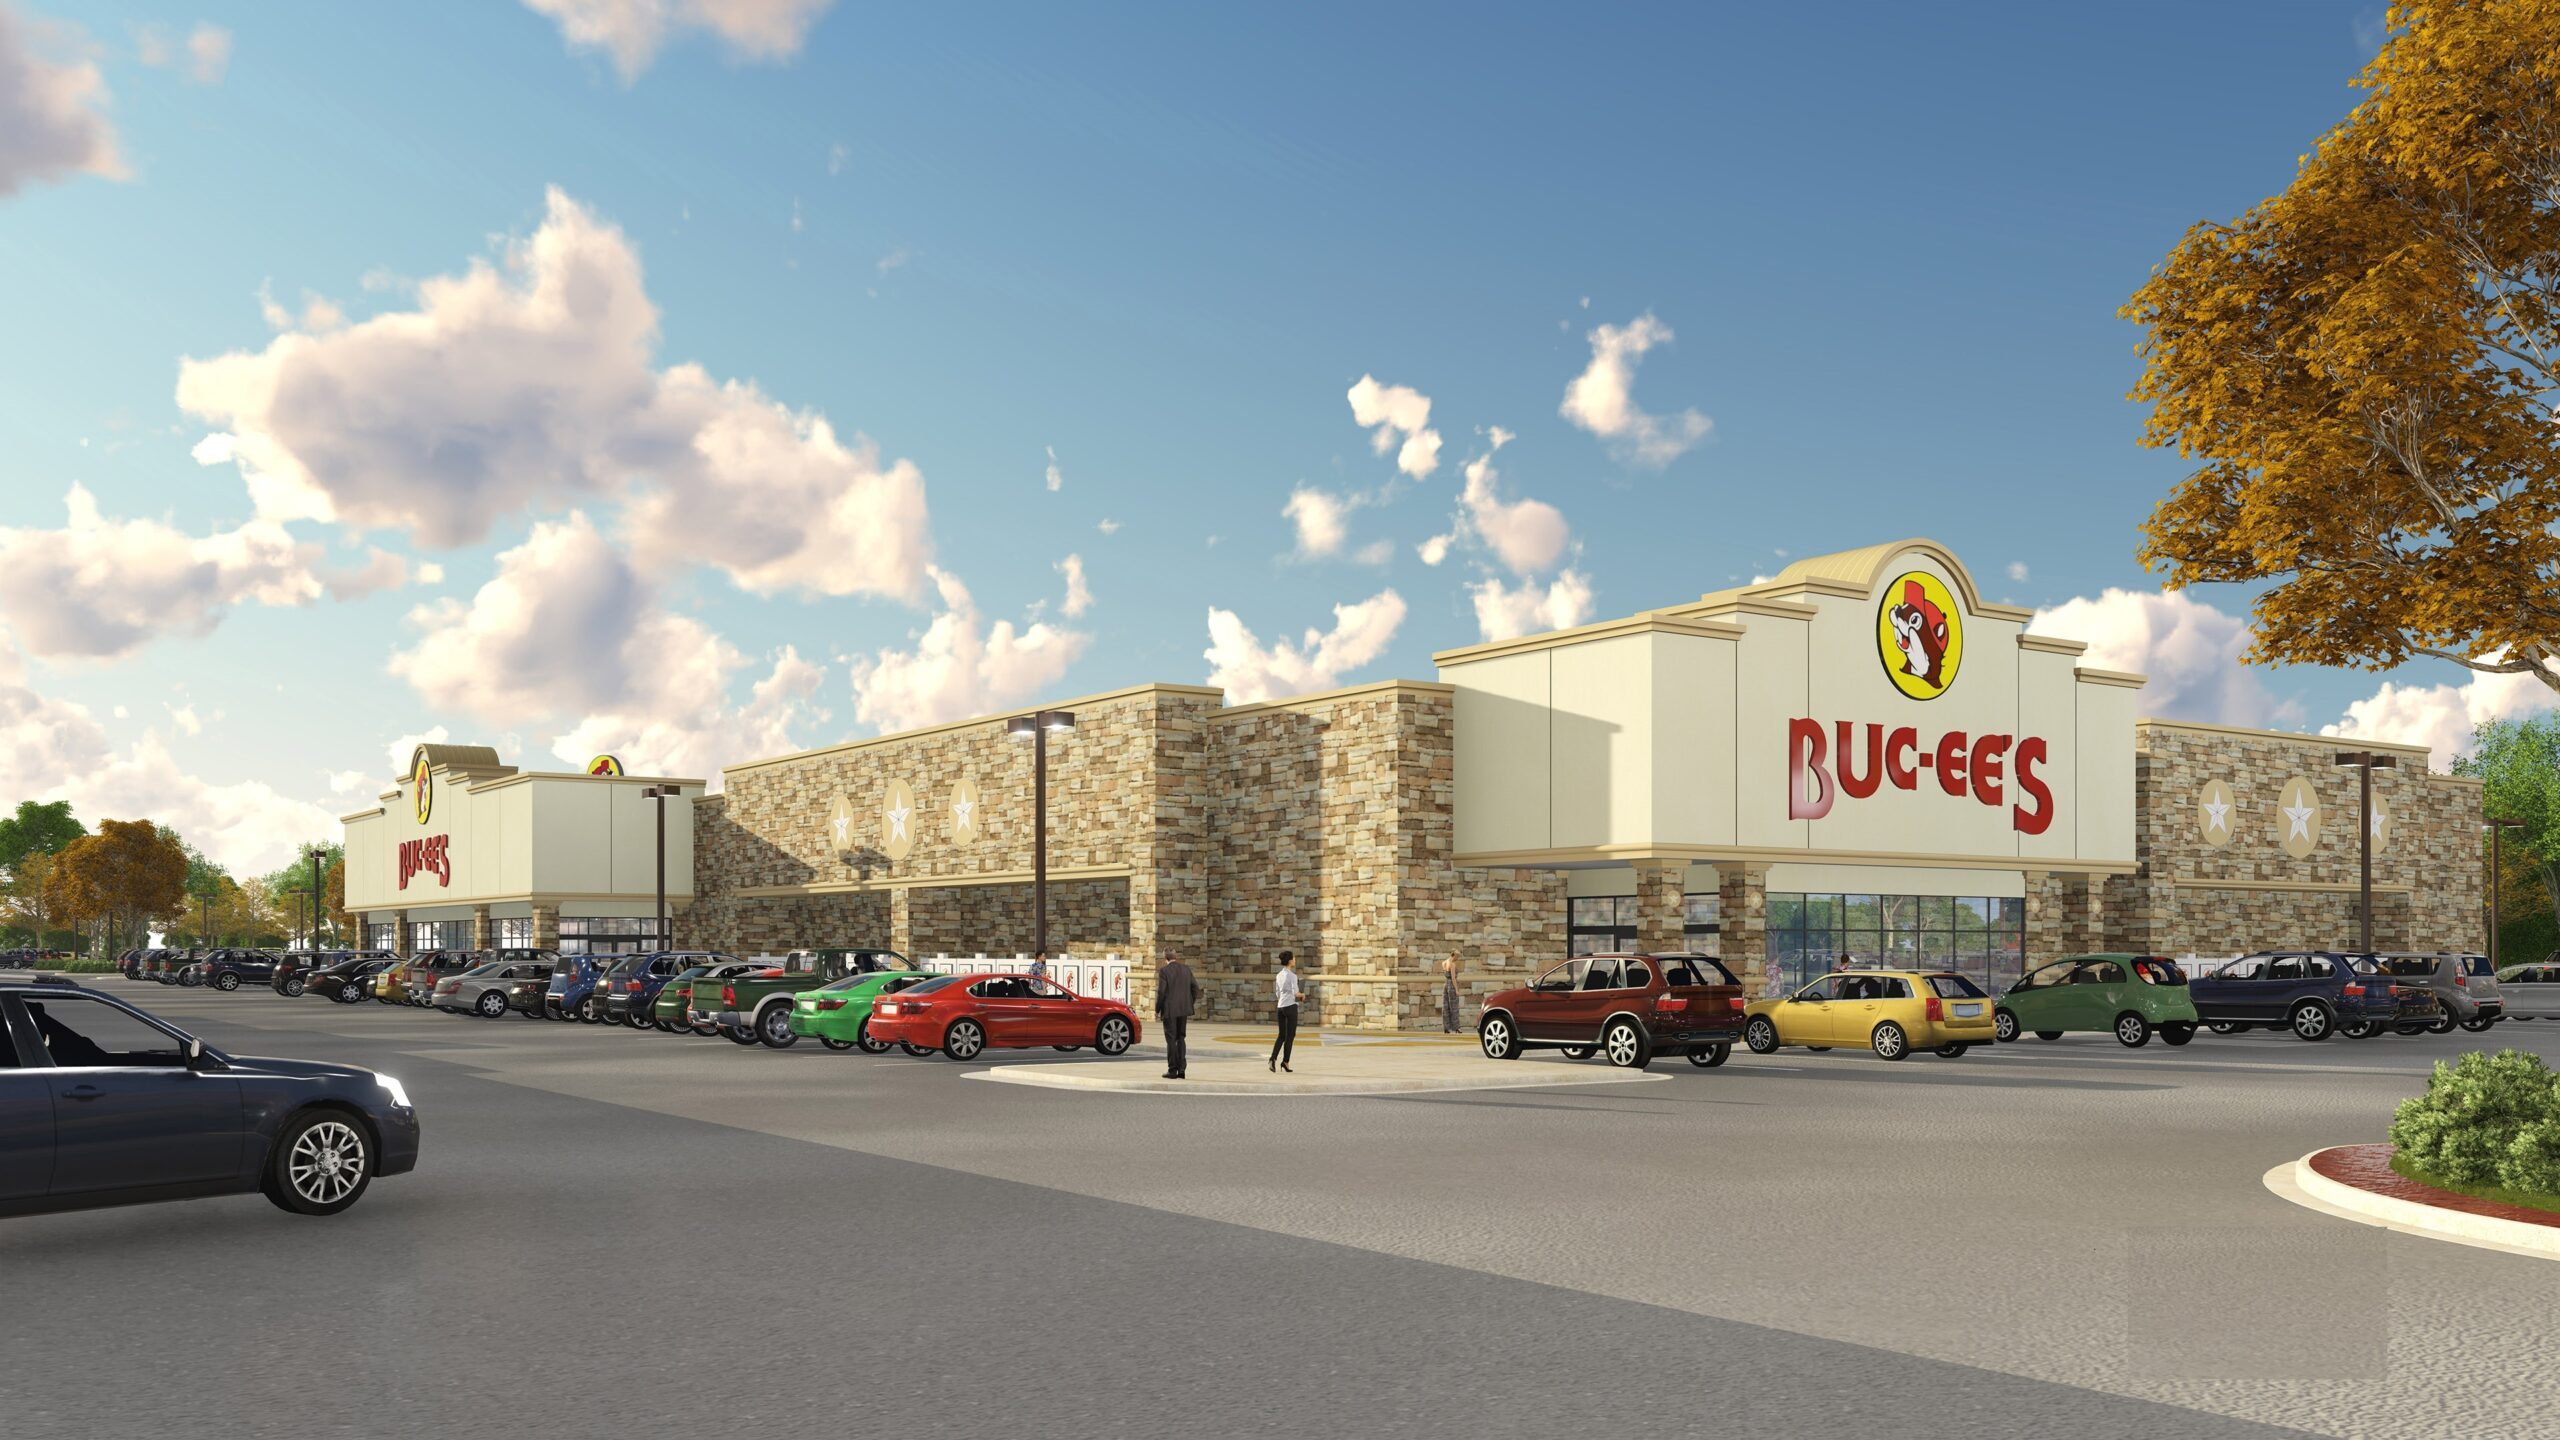 BUC-EE'S TO HOST GROUNDBREAKING CEREMONY FOR RICHMOND, KY TRAVEL CENTER APRIL 13